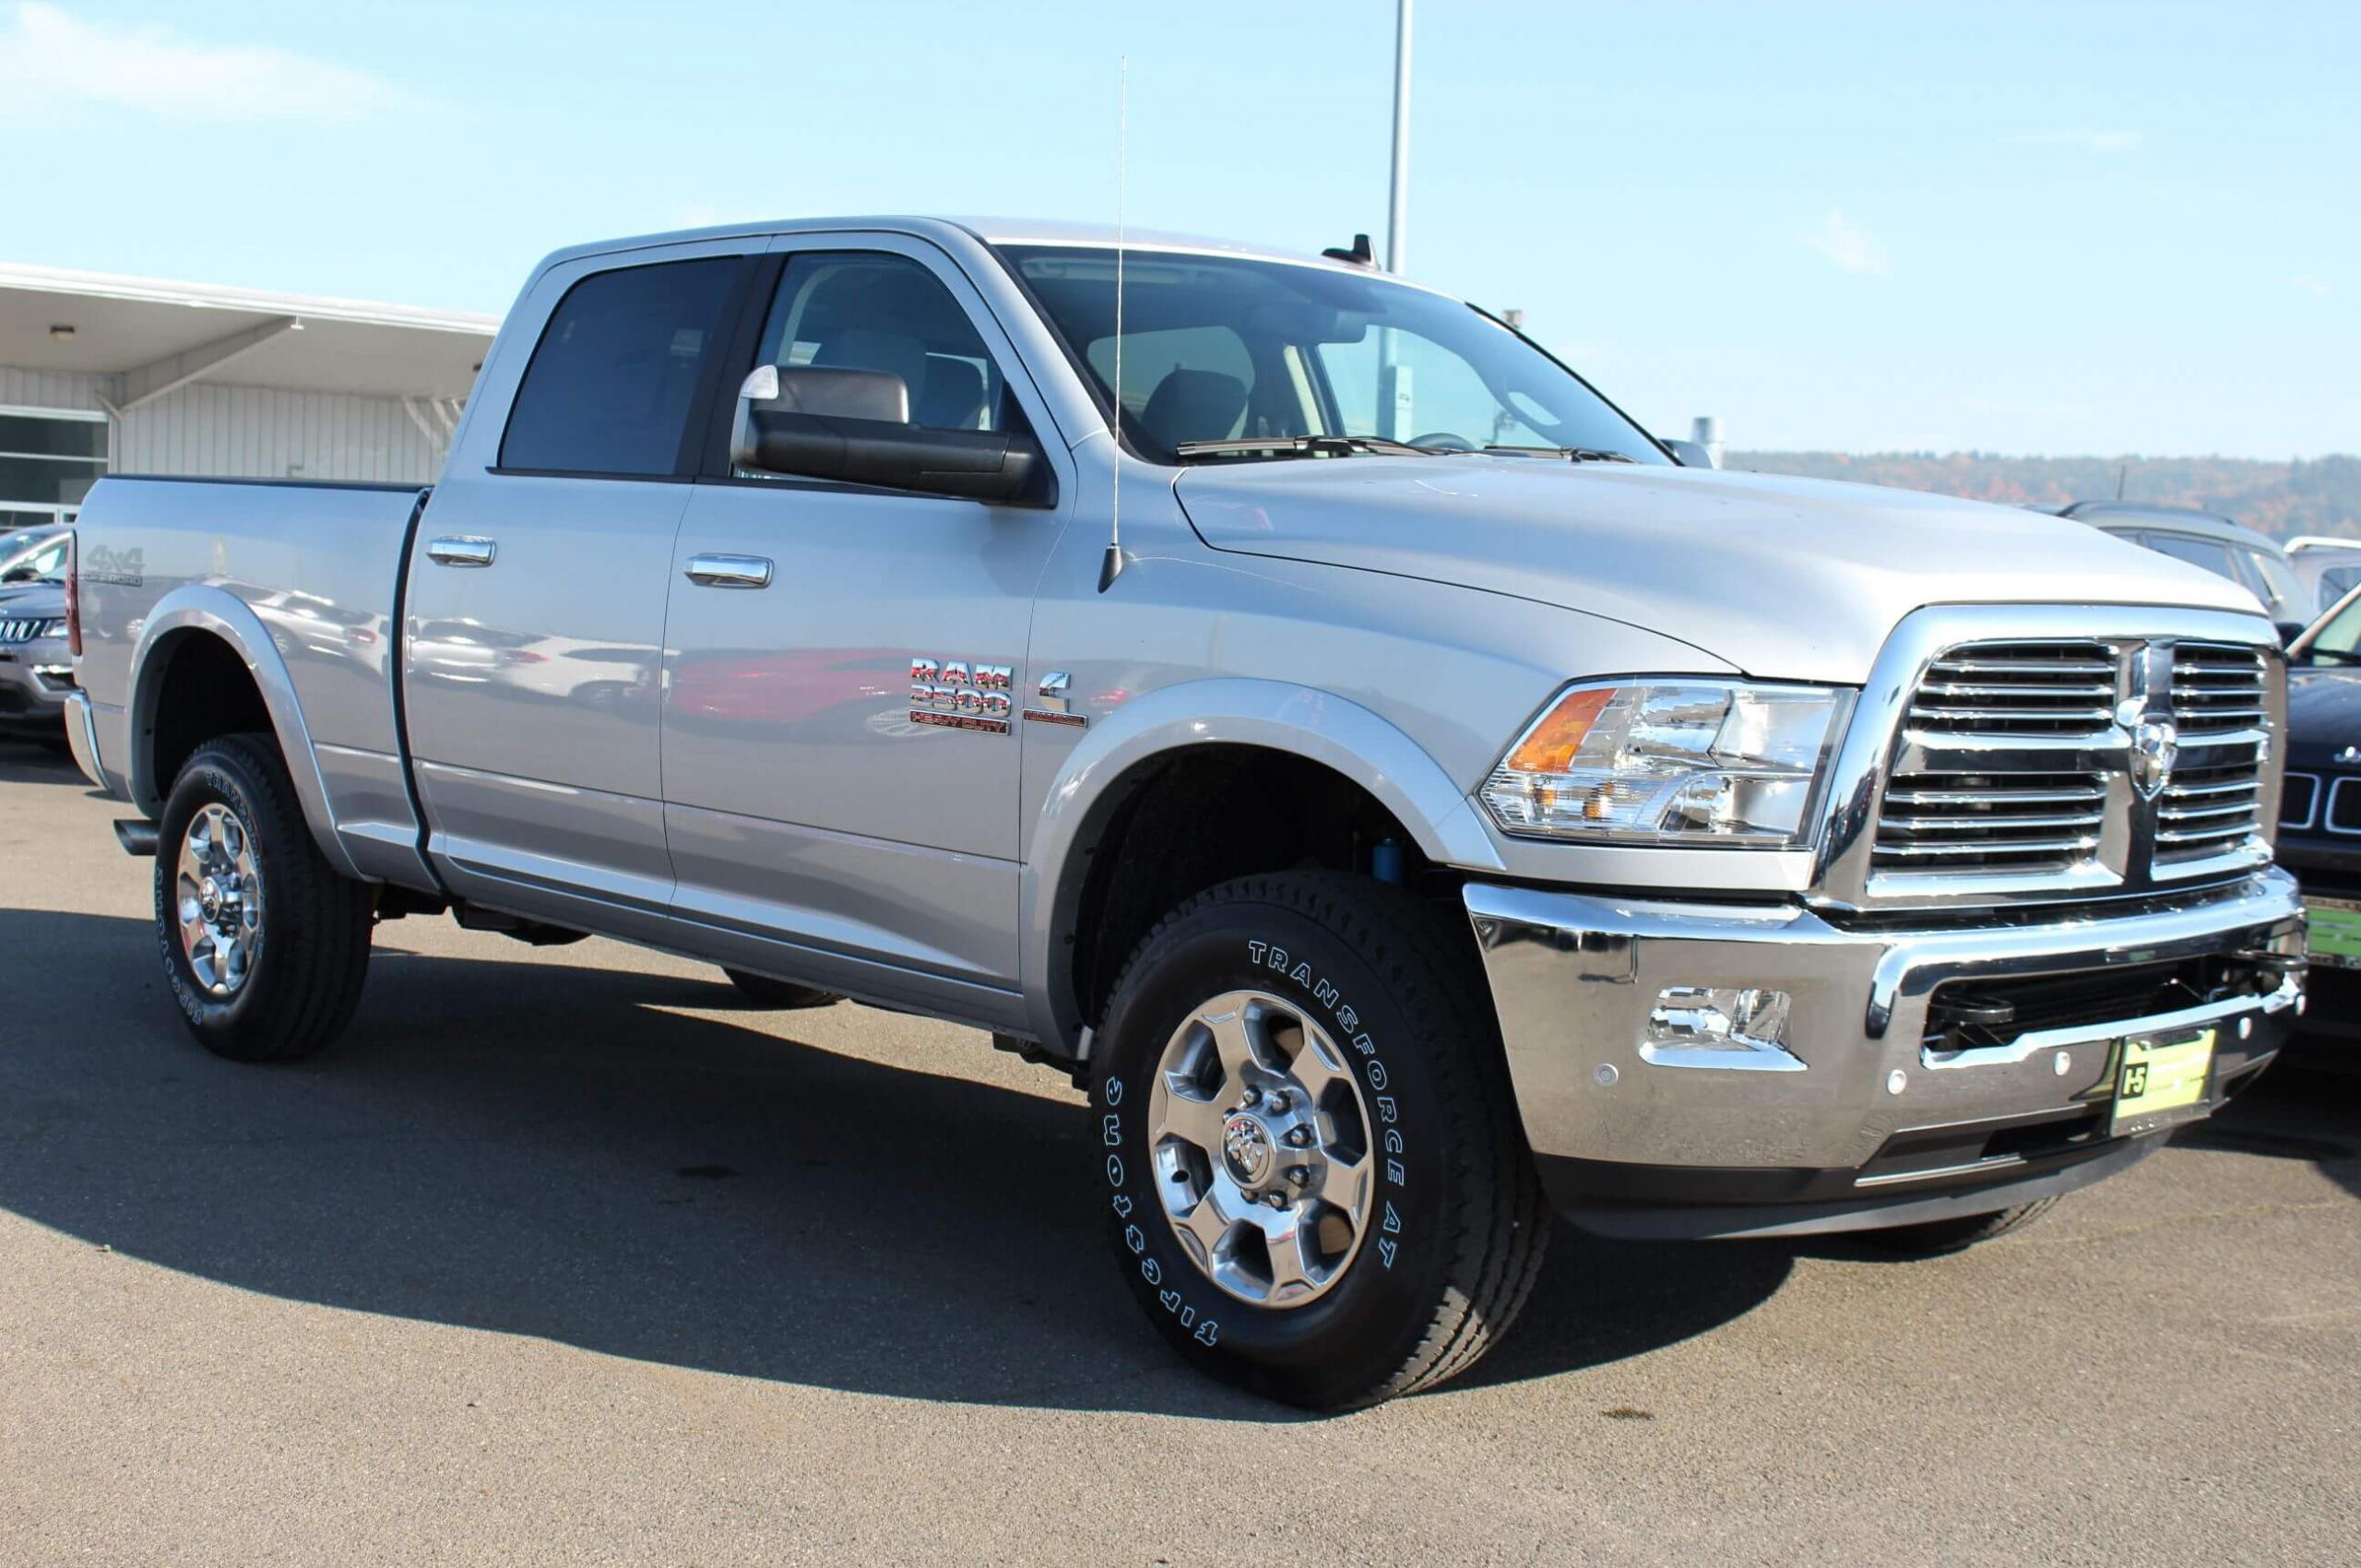 Free Download Dodge 2019 2020 Dodge Ram 2500 Slt Wallpaper